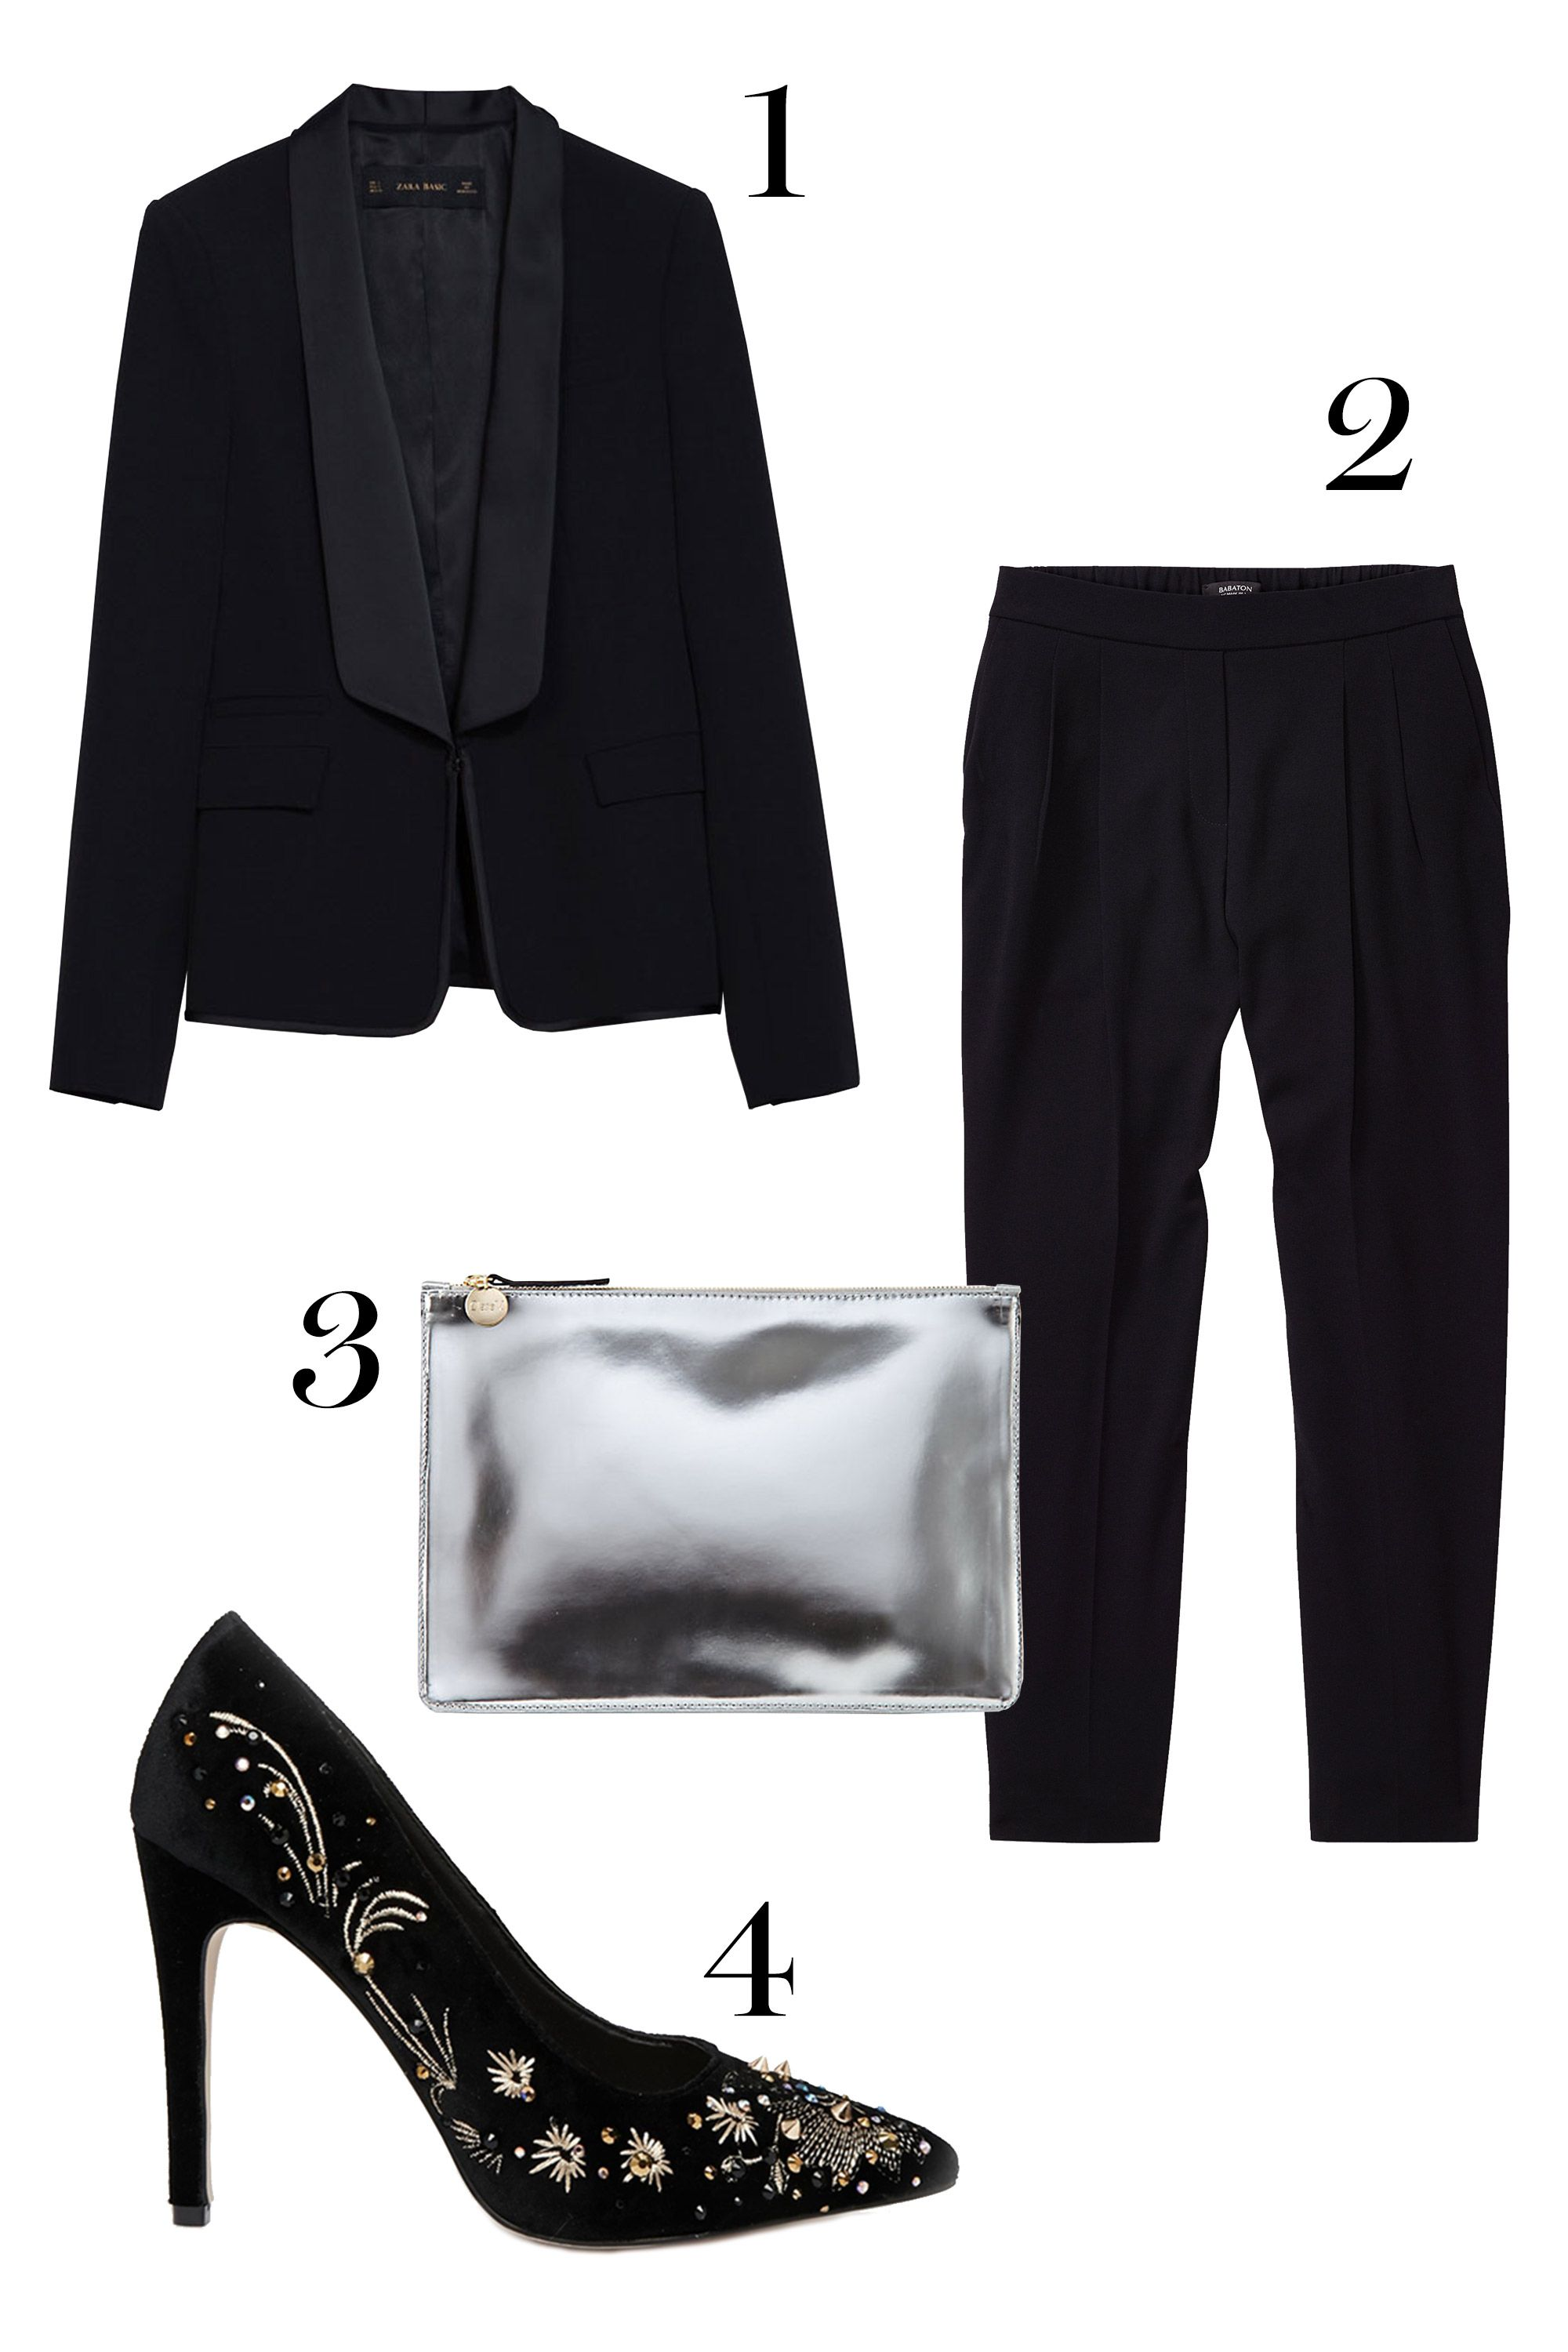 "1. Zara blazer, $129;<a href=""http://www.zara.com/us/en/woman/blazers/blazer-with-combined-lapel-c269184p2431541.html""> zara.com.</a>  2. Aritzia pants, $145; <a href=""http:// http://us.aritzia.com/product/cohen-pant/43443.html?dwvar_43443_color=1274#start=2"">aritzia.com.</a>   3. Clare Vivier clutch, $198; <a href=""http://www.stevenalan.com/F14_NA_F14_CL10010.html?dwvar_F14__NA__F14__CL10010_color=040#cgid=womens-shoes-and-accessories-bags-slgs&start=24&sz=12&frmt=ajax&start=24&hitcount=72"">stevenalan.com.</a>  4. Asos heels, $113.70; <a href=""http://www.asos.com/ASOS/ASOS-PARTY-ALL-NIGHT-High-Heels/Prod/pgeproduct.aspx?iid=4349336&cid=4172&Rf989=5020&sh=0&pge=3&pgesize=36&sort=-1&clr=Black&totalstyles=330&gridsize=3"">asos.com.</a>"